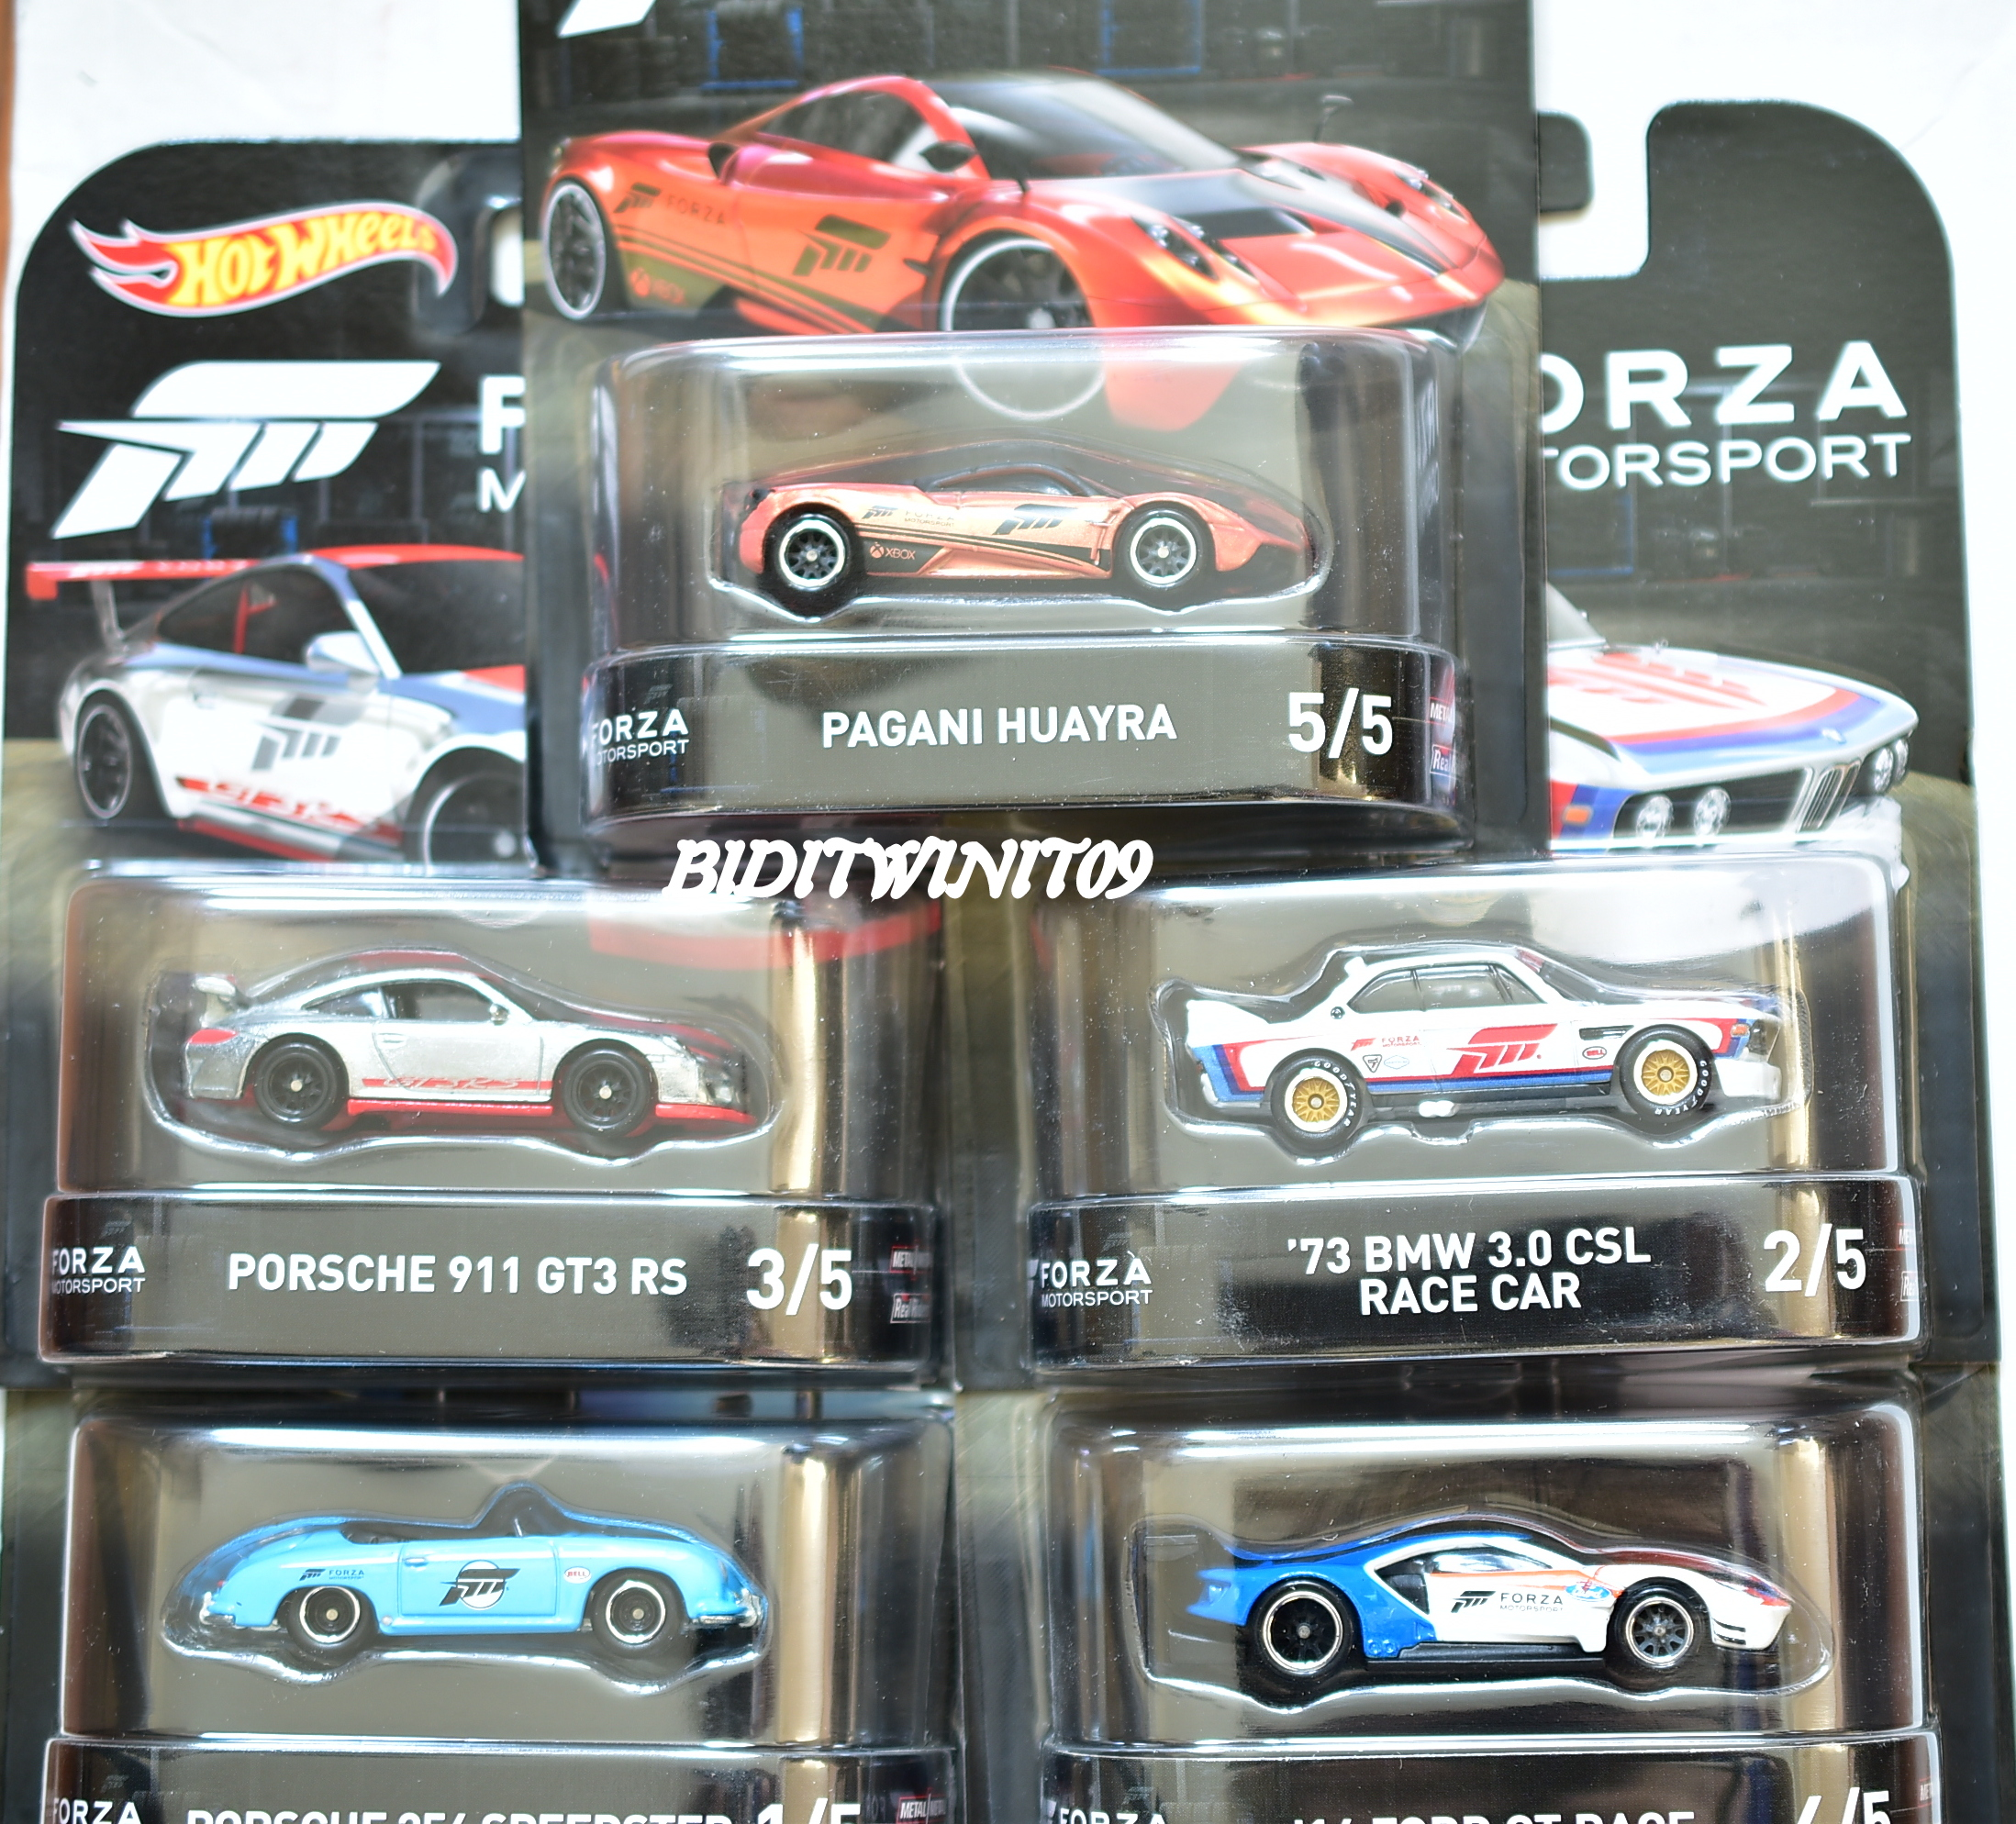 HOT WHEELS 2017 RETRO ENTERTAINMENT SET OF 5 FORZA MOTORSPORT BMW PORSCHE FORD